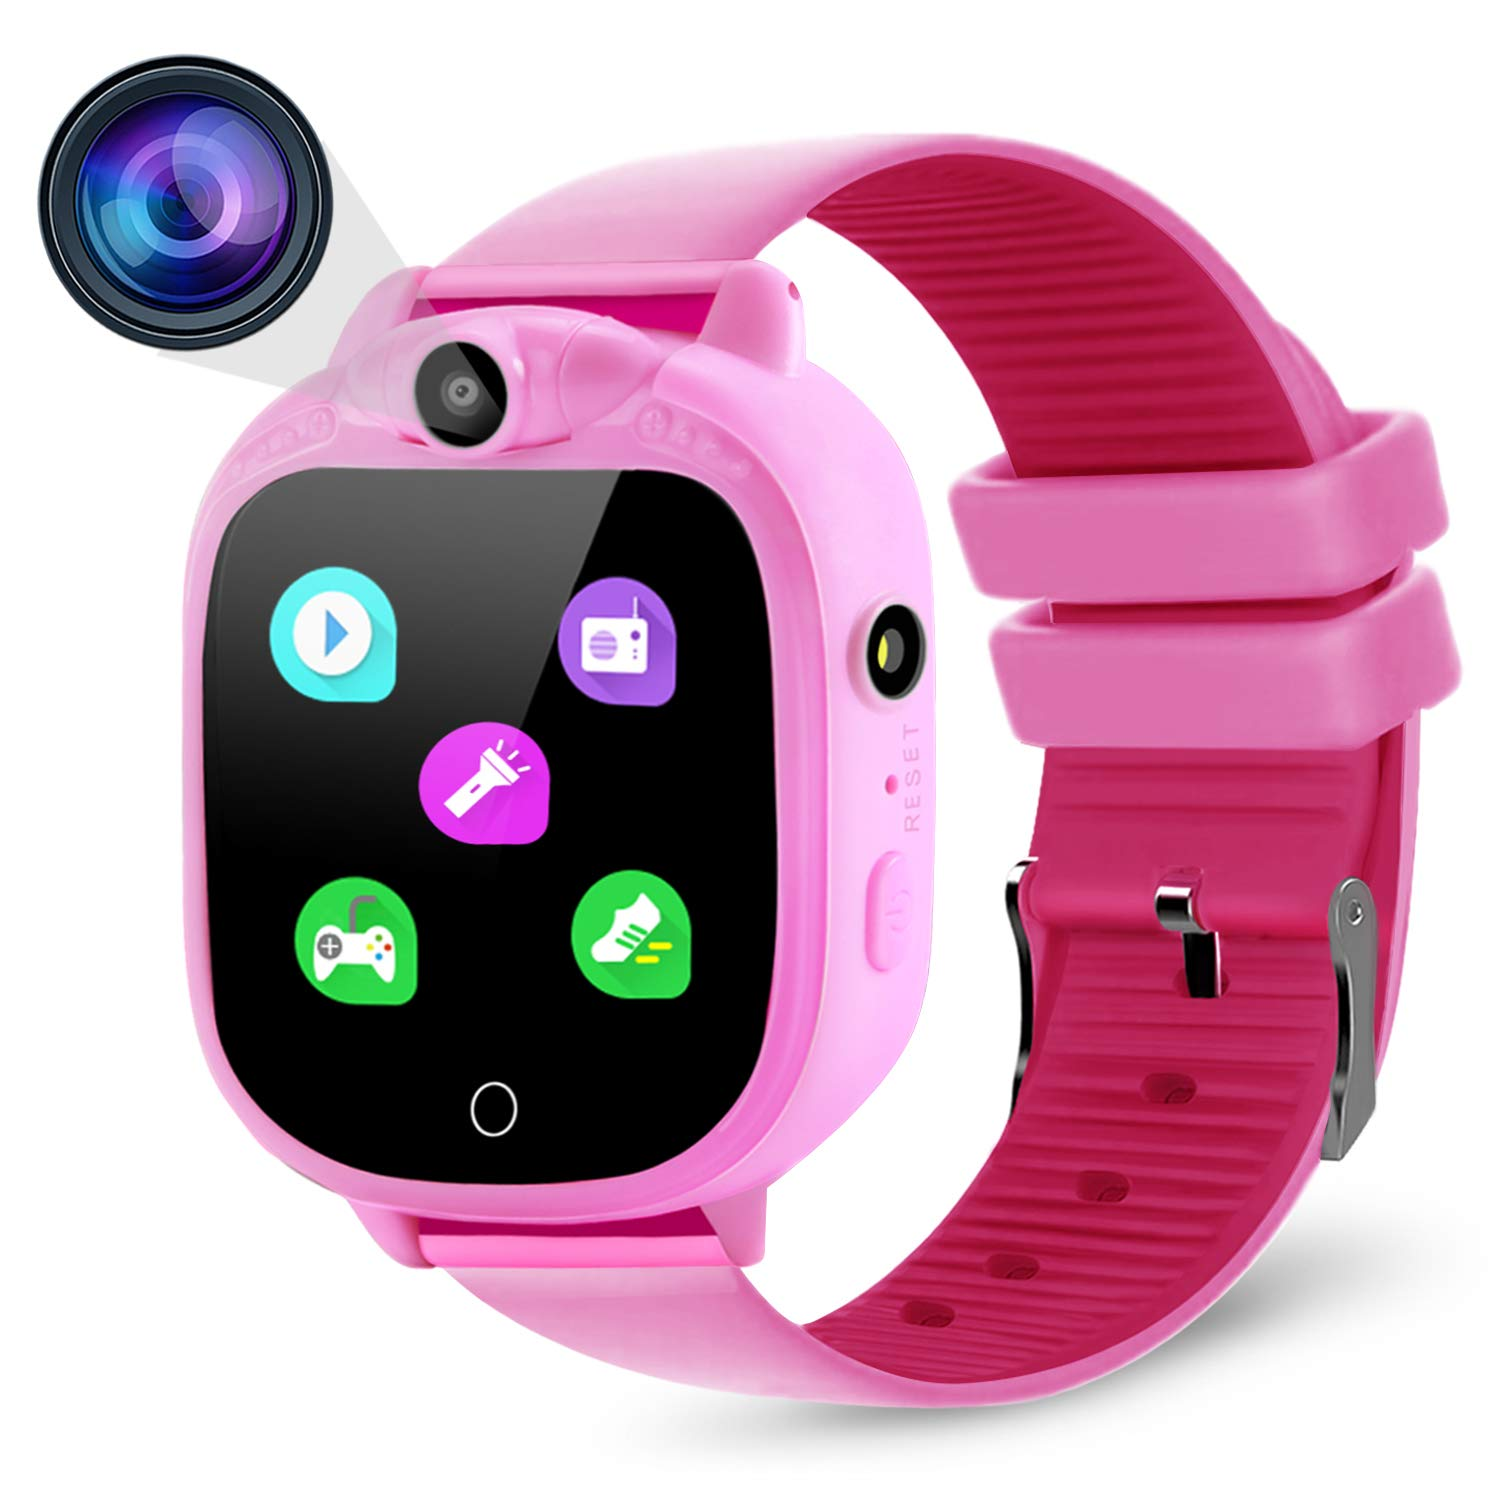 Smart Watch Digital Camera Watch with 1.5 inch Touch LCD for Boys Girls